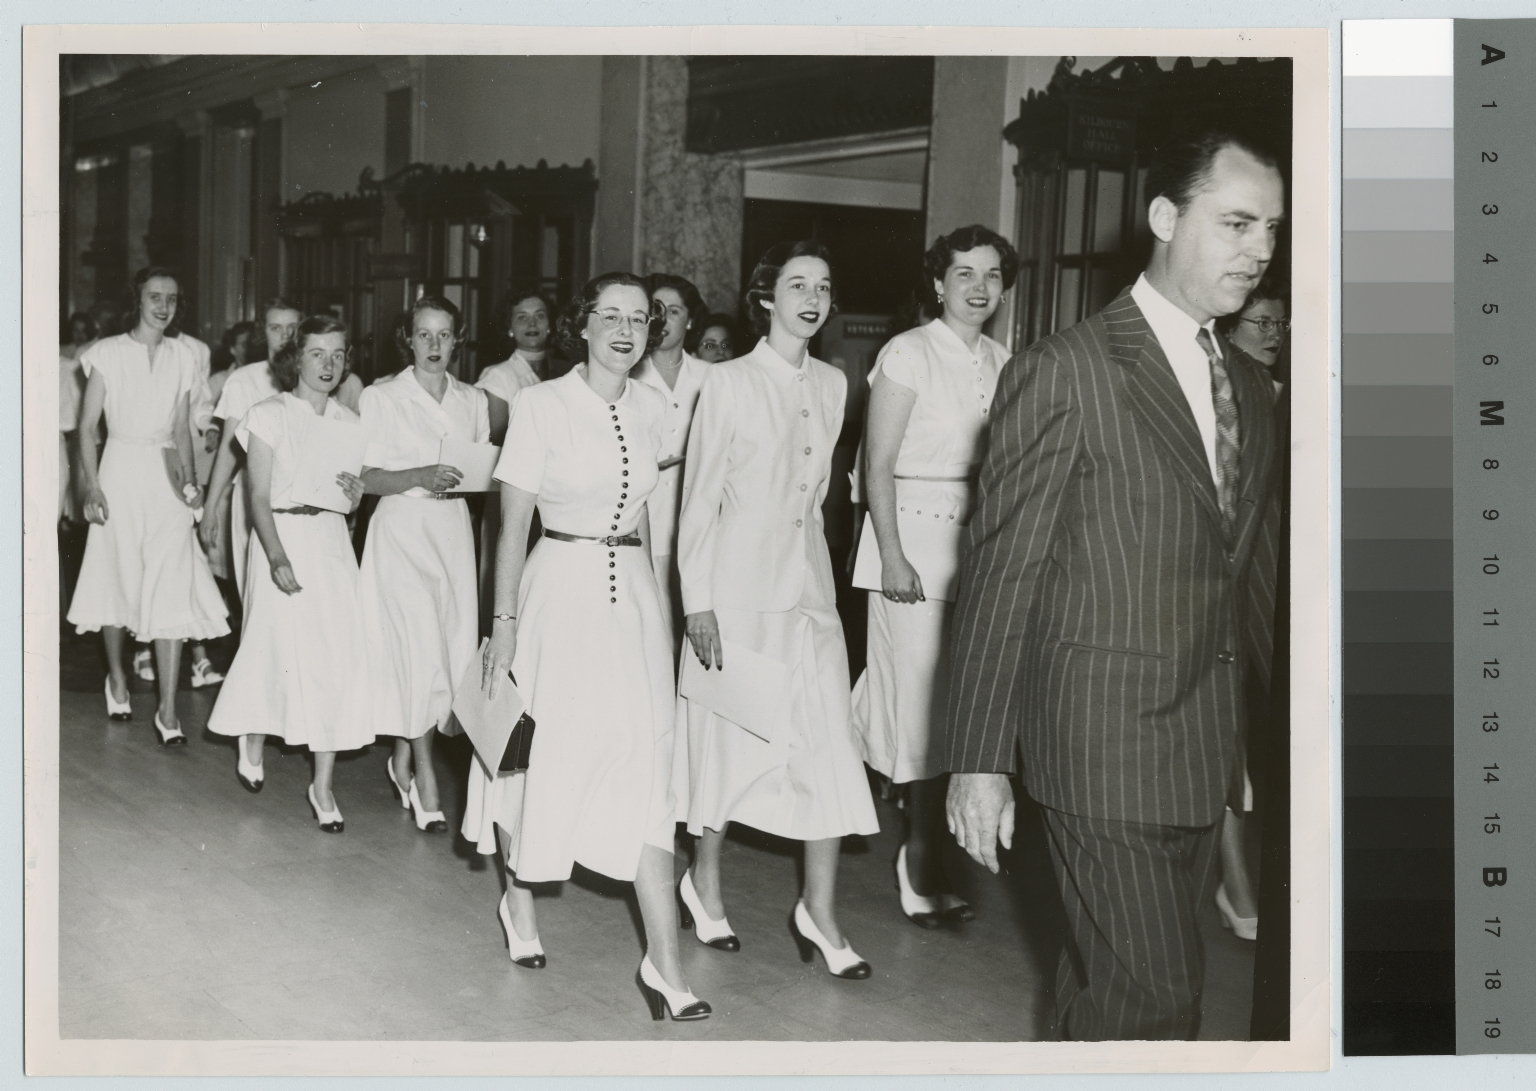 Unidentified students arriving for convocation, Rochester Institute of Technology, Eastman Theatre [1949]